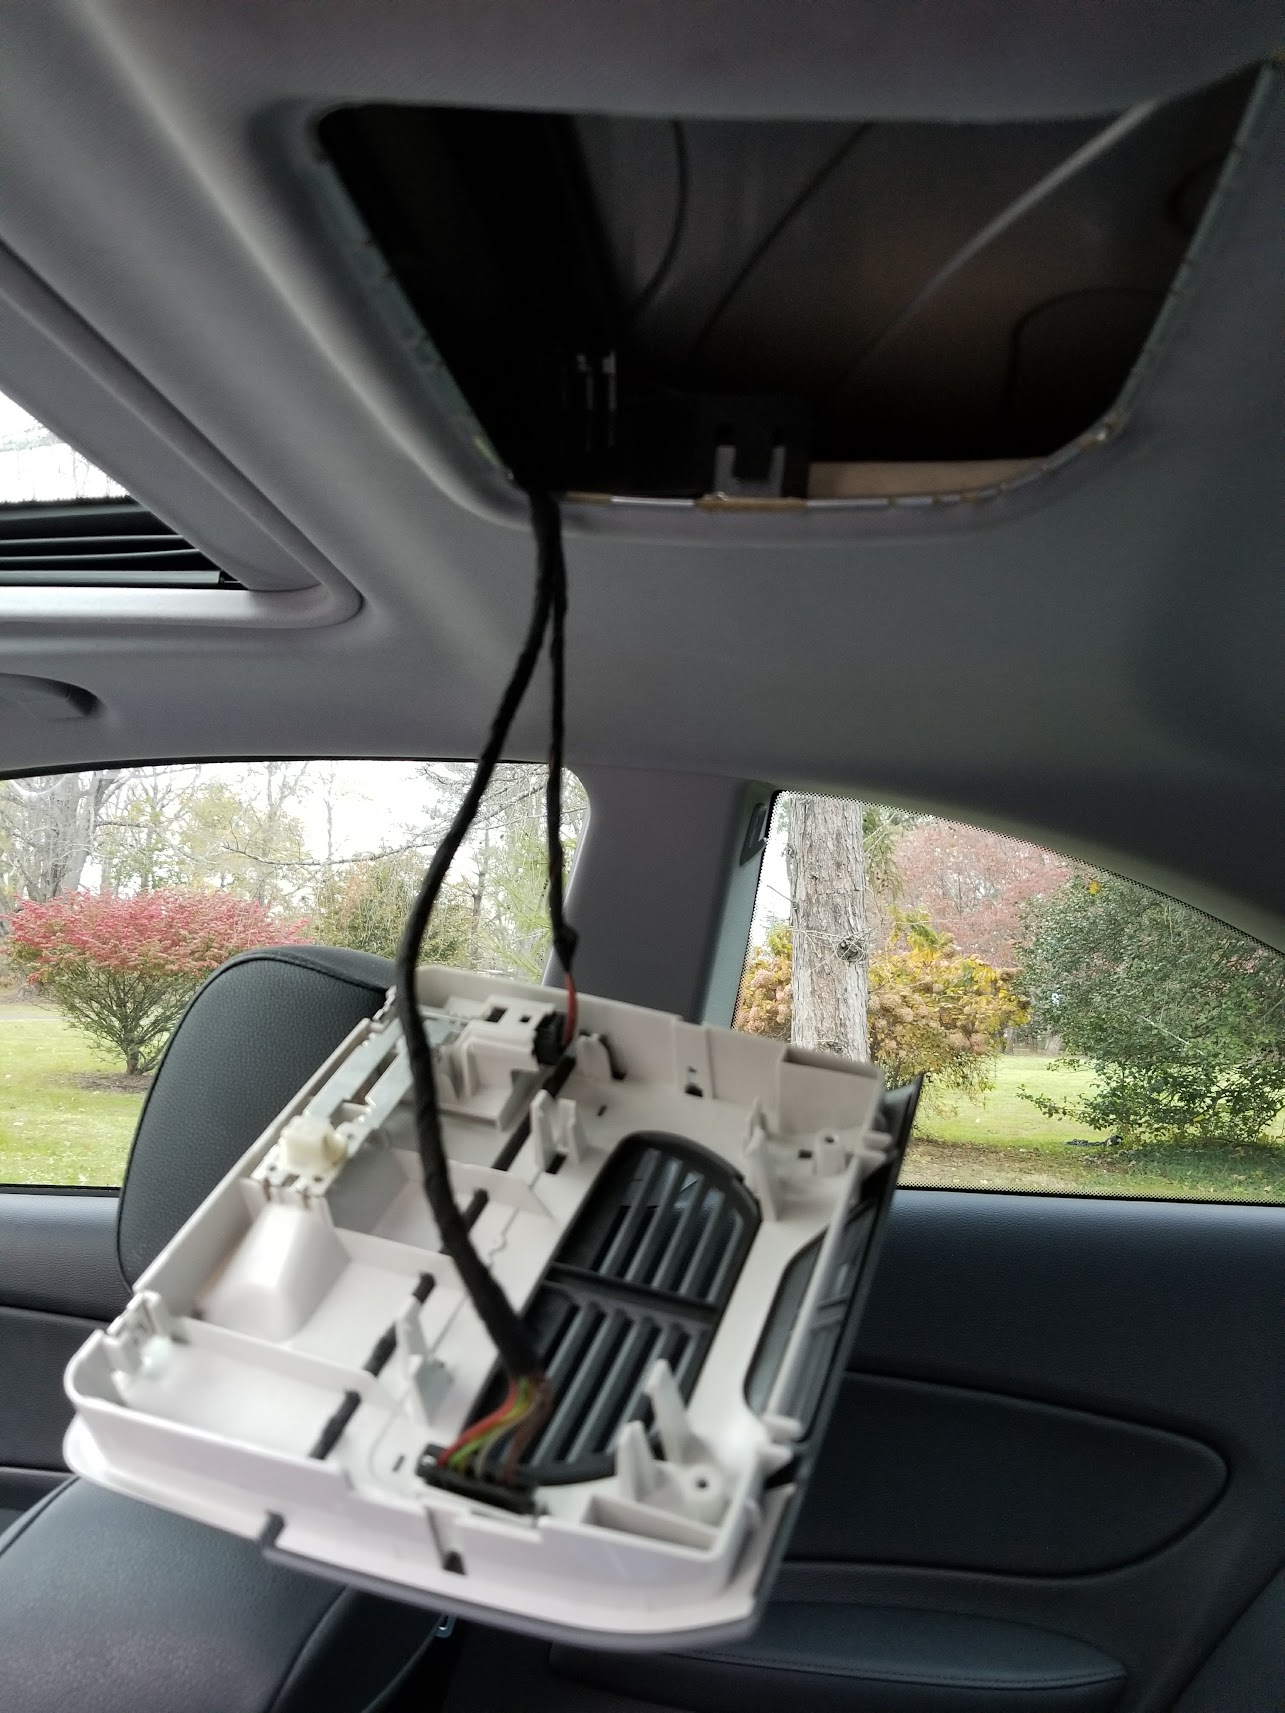 Rear Interior Dome Light Retrofit Help Power To The And Comes On Wiring From Existing Is Split Between Two Cables It Looks Like One Cable For Nonexistent Alarm System